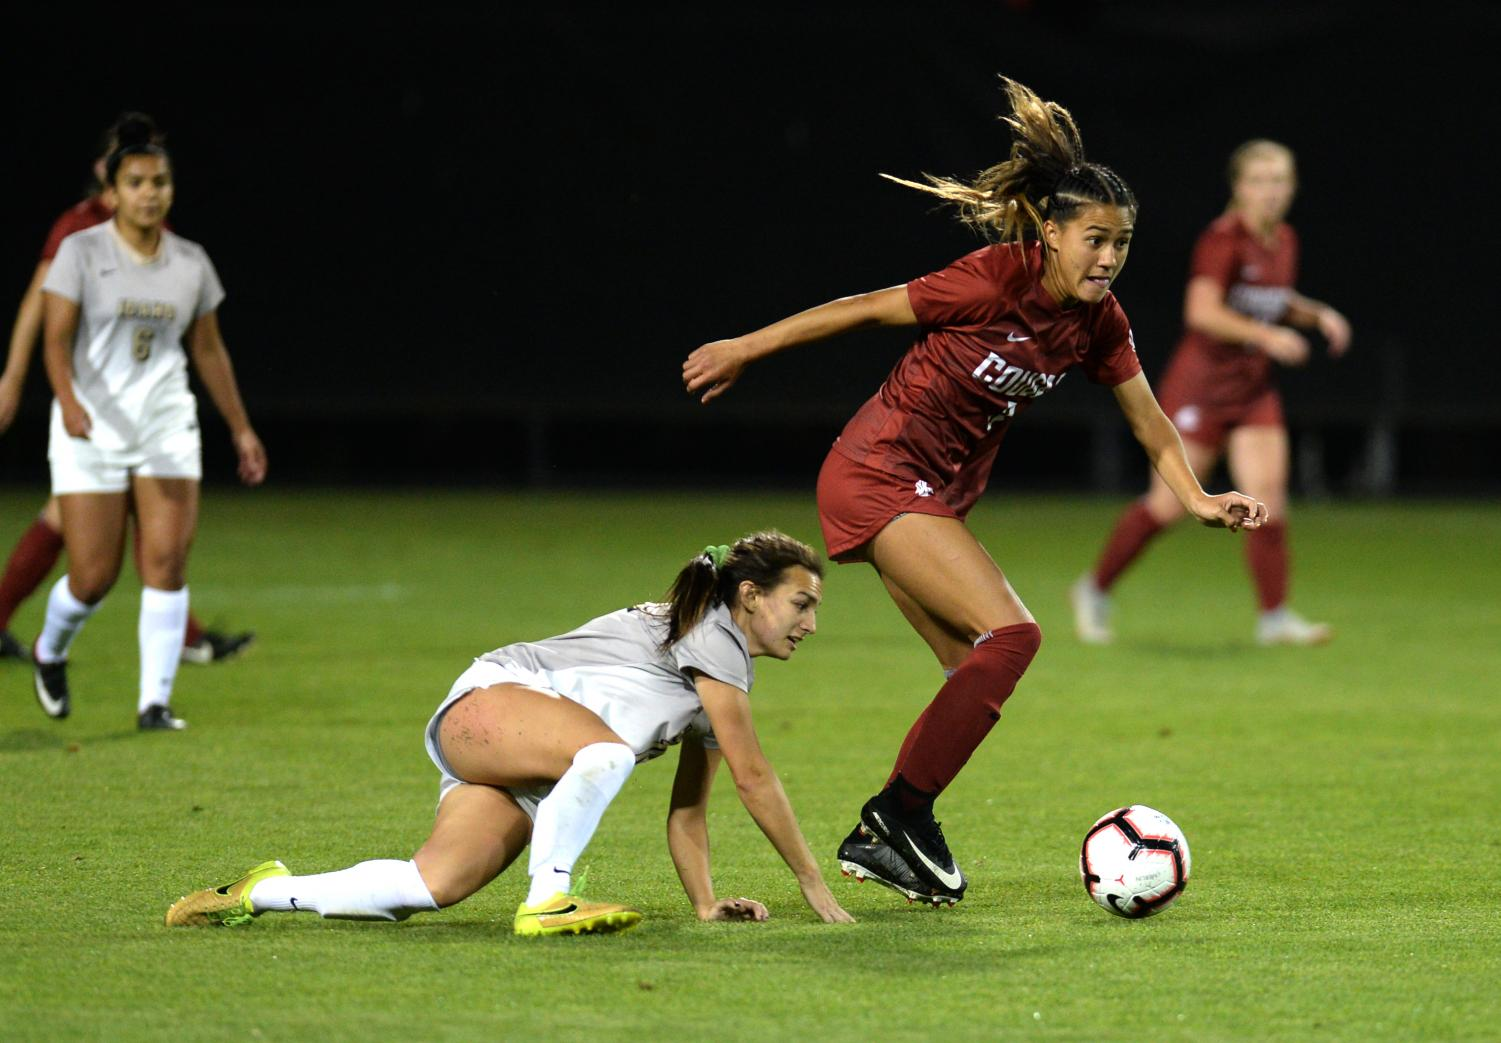 Finessing her way past another Idaho player, sophomore forward Makamae Gomera-Stevens leaves multiple players in the dust during the match against the Idaho Vandals on Sept. 6 at the Lower Soccer Field.